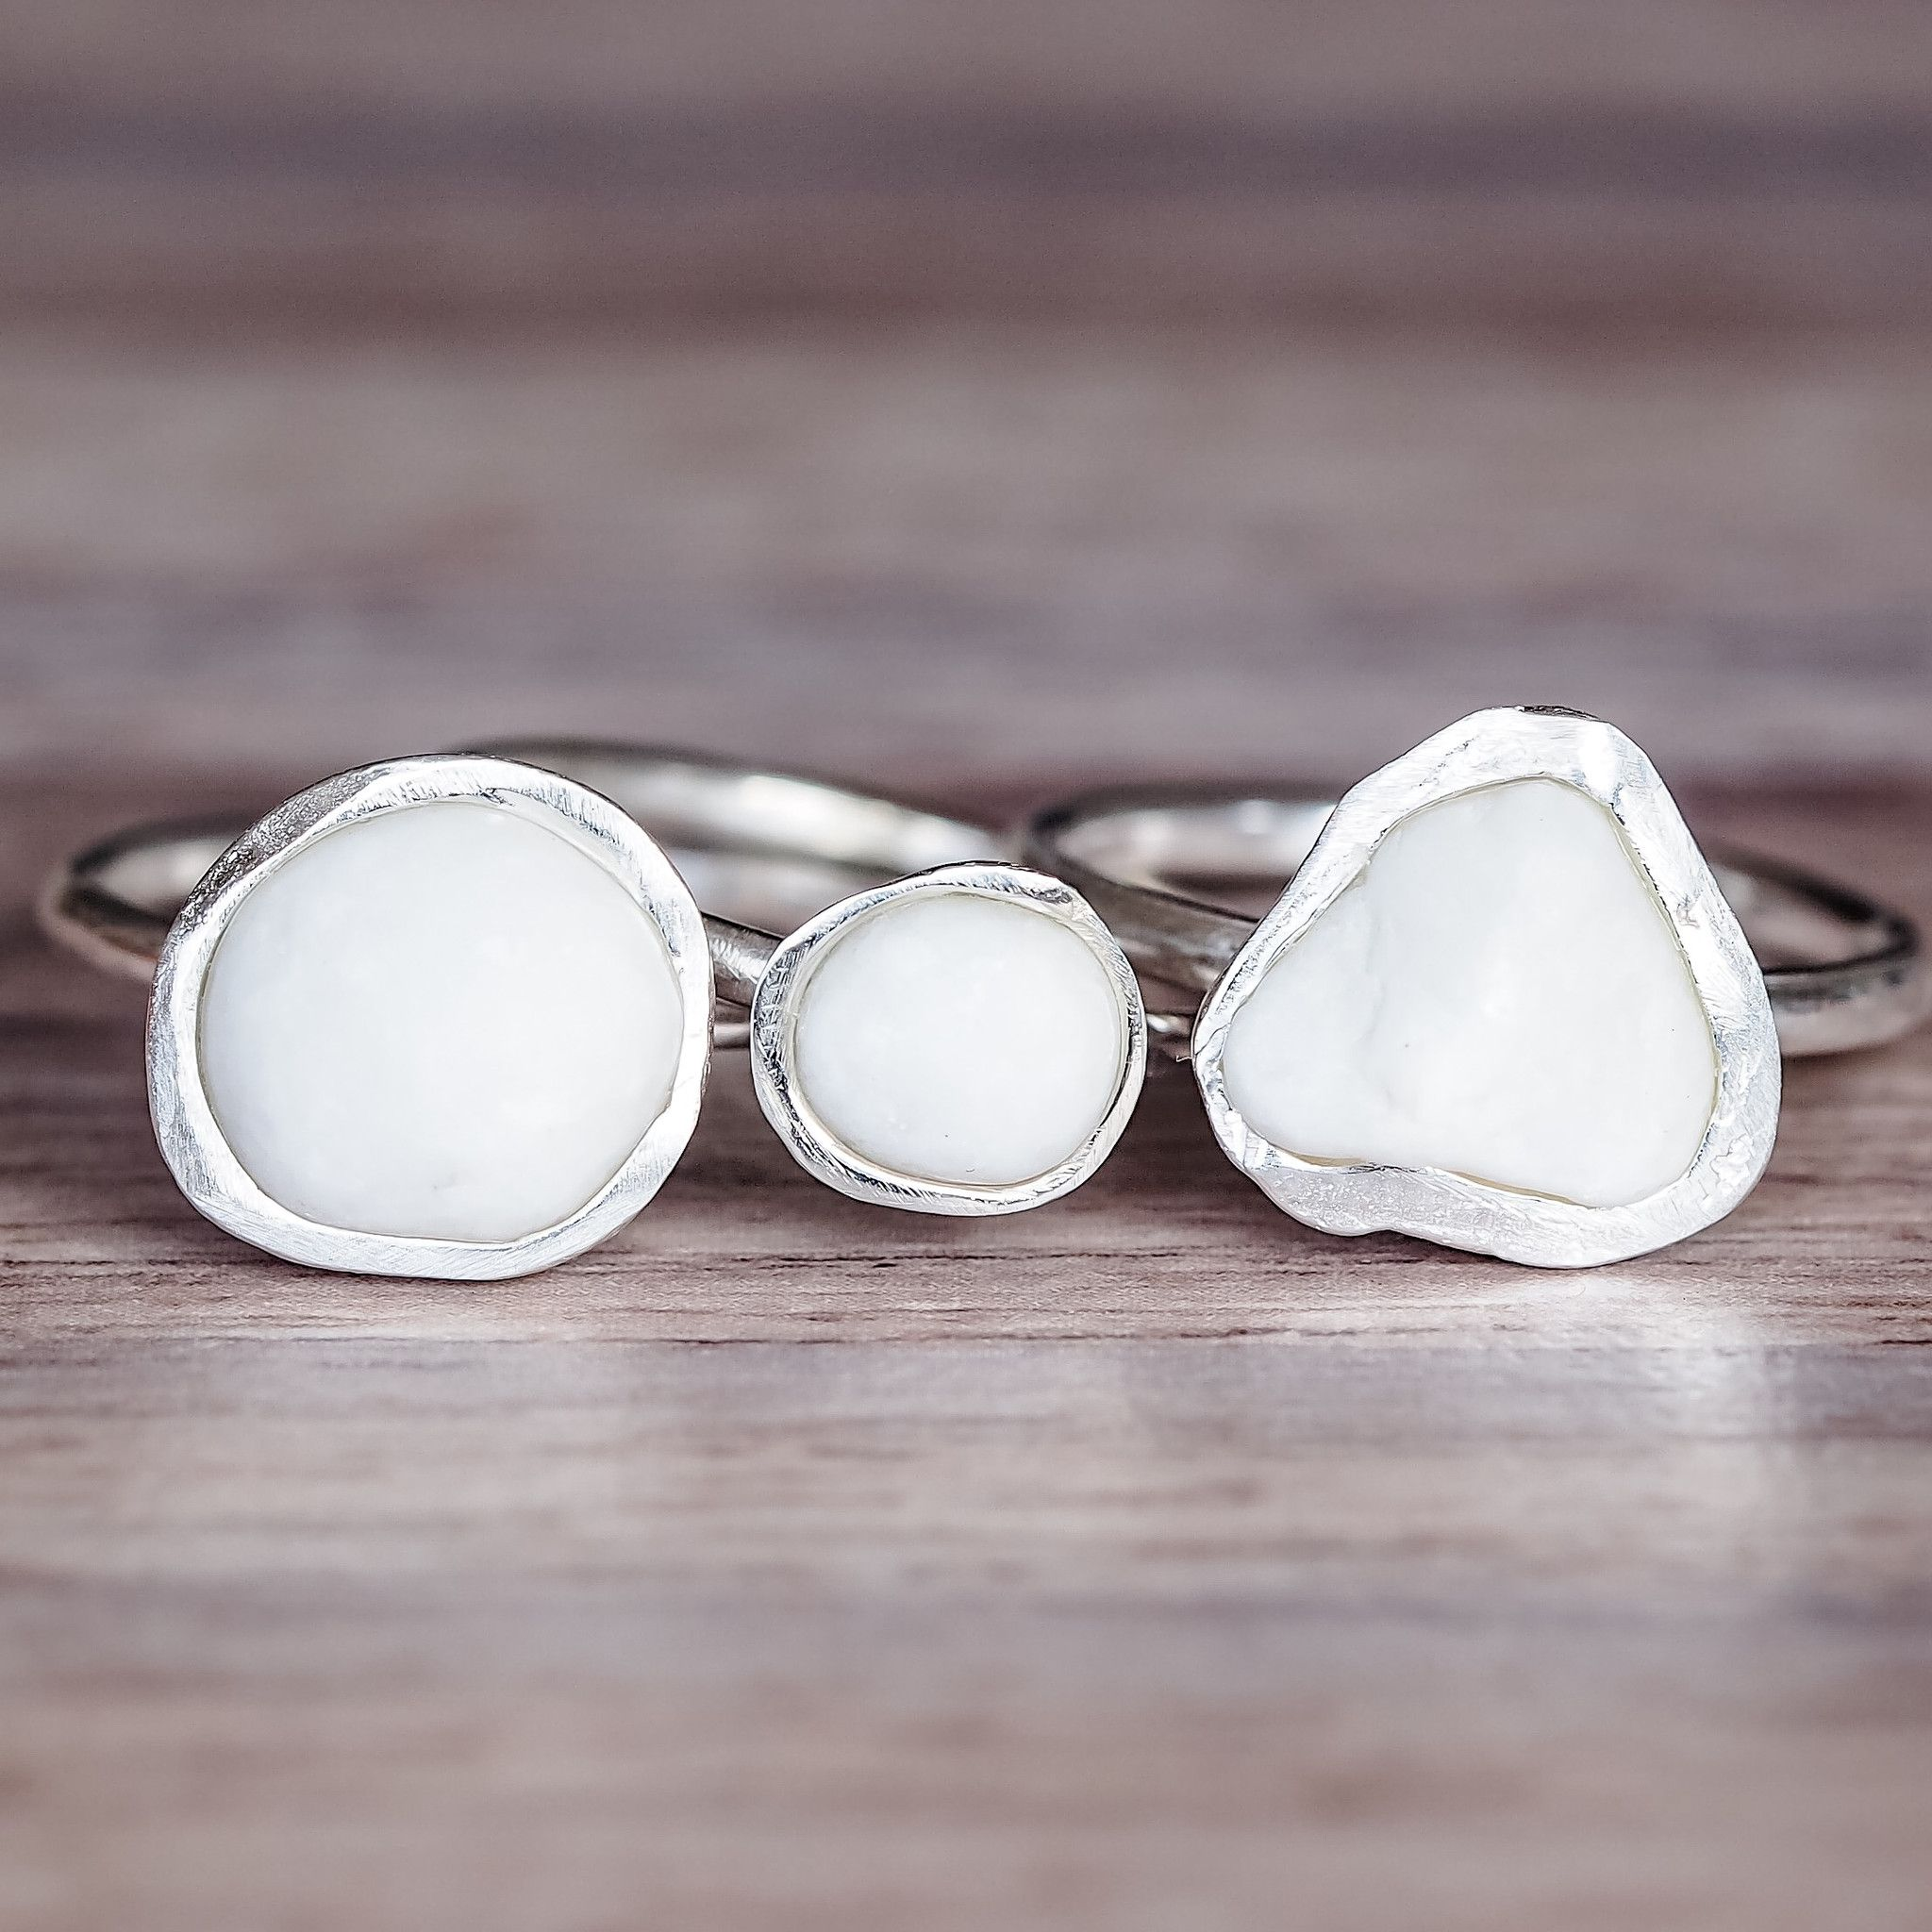 san francisco e9b17 670a6 White Pebble and Sterling Silver Ring   Bohemian Gypsy Jewelry   Festival  Jewels   Indie and Harper